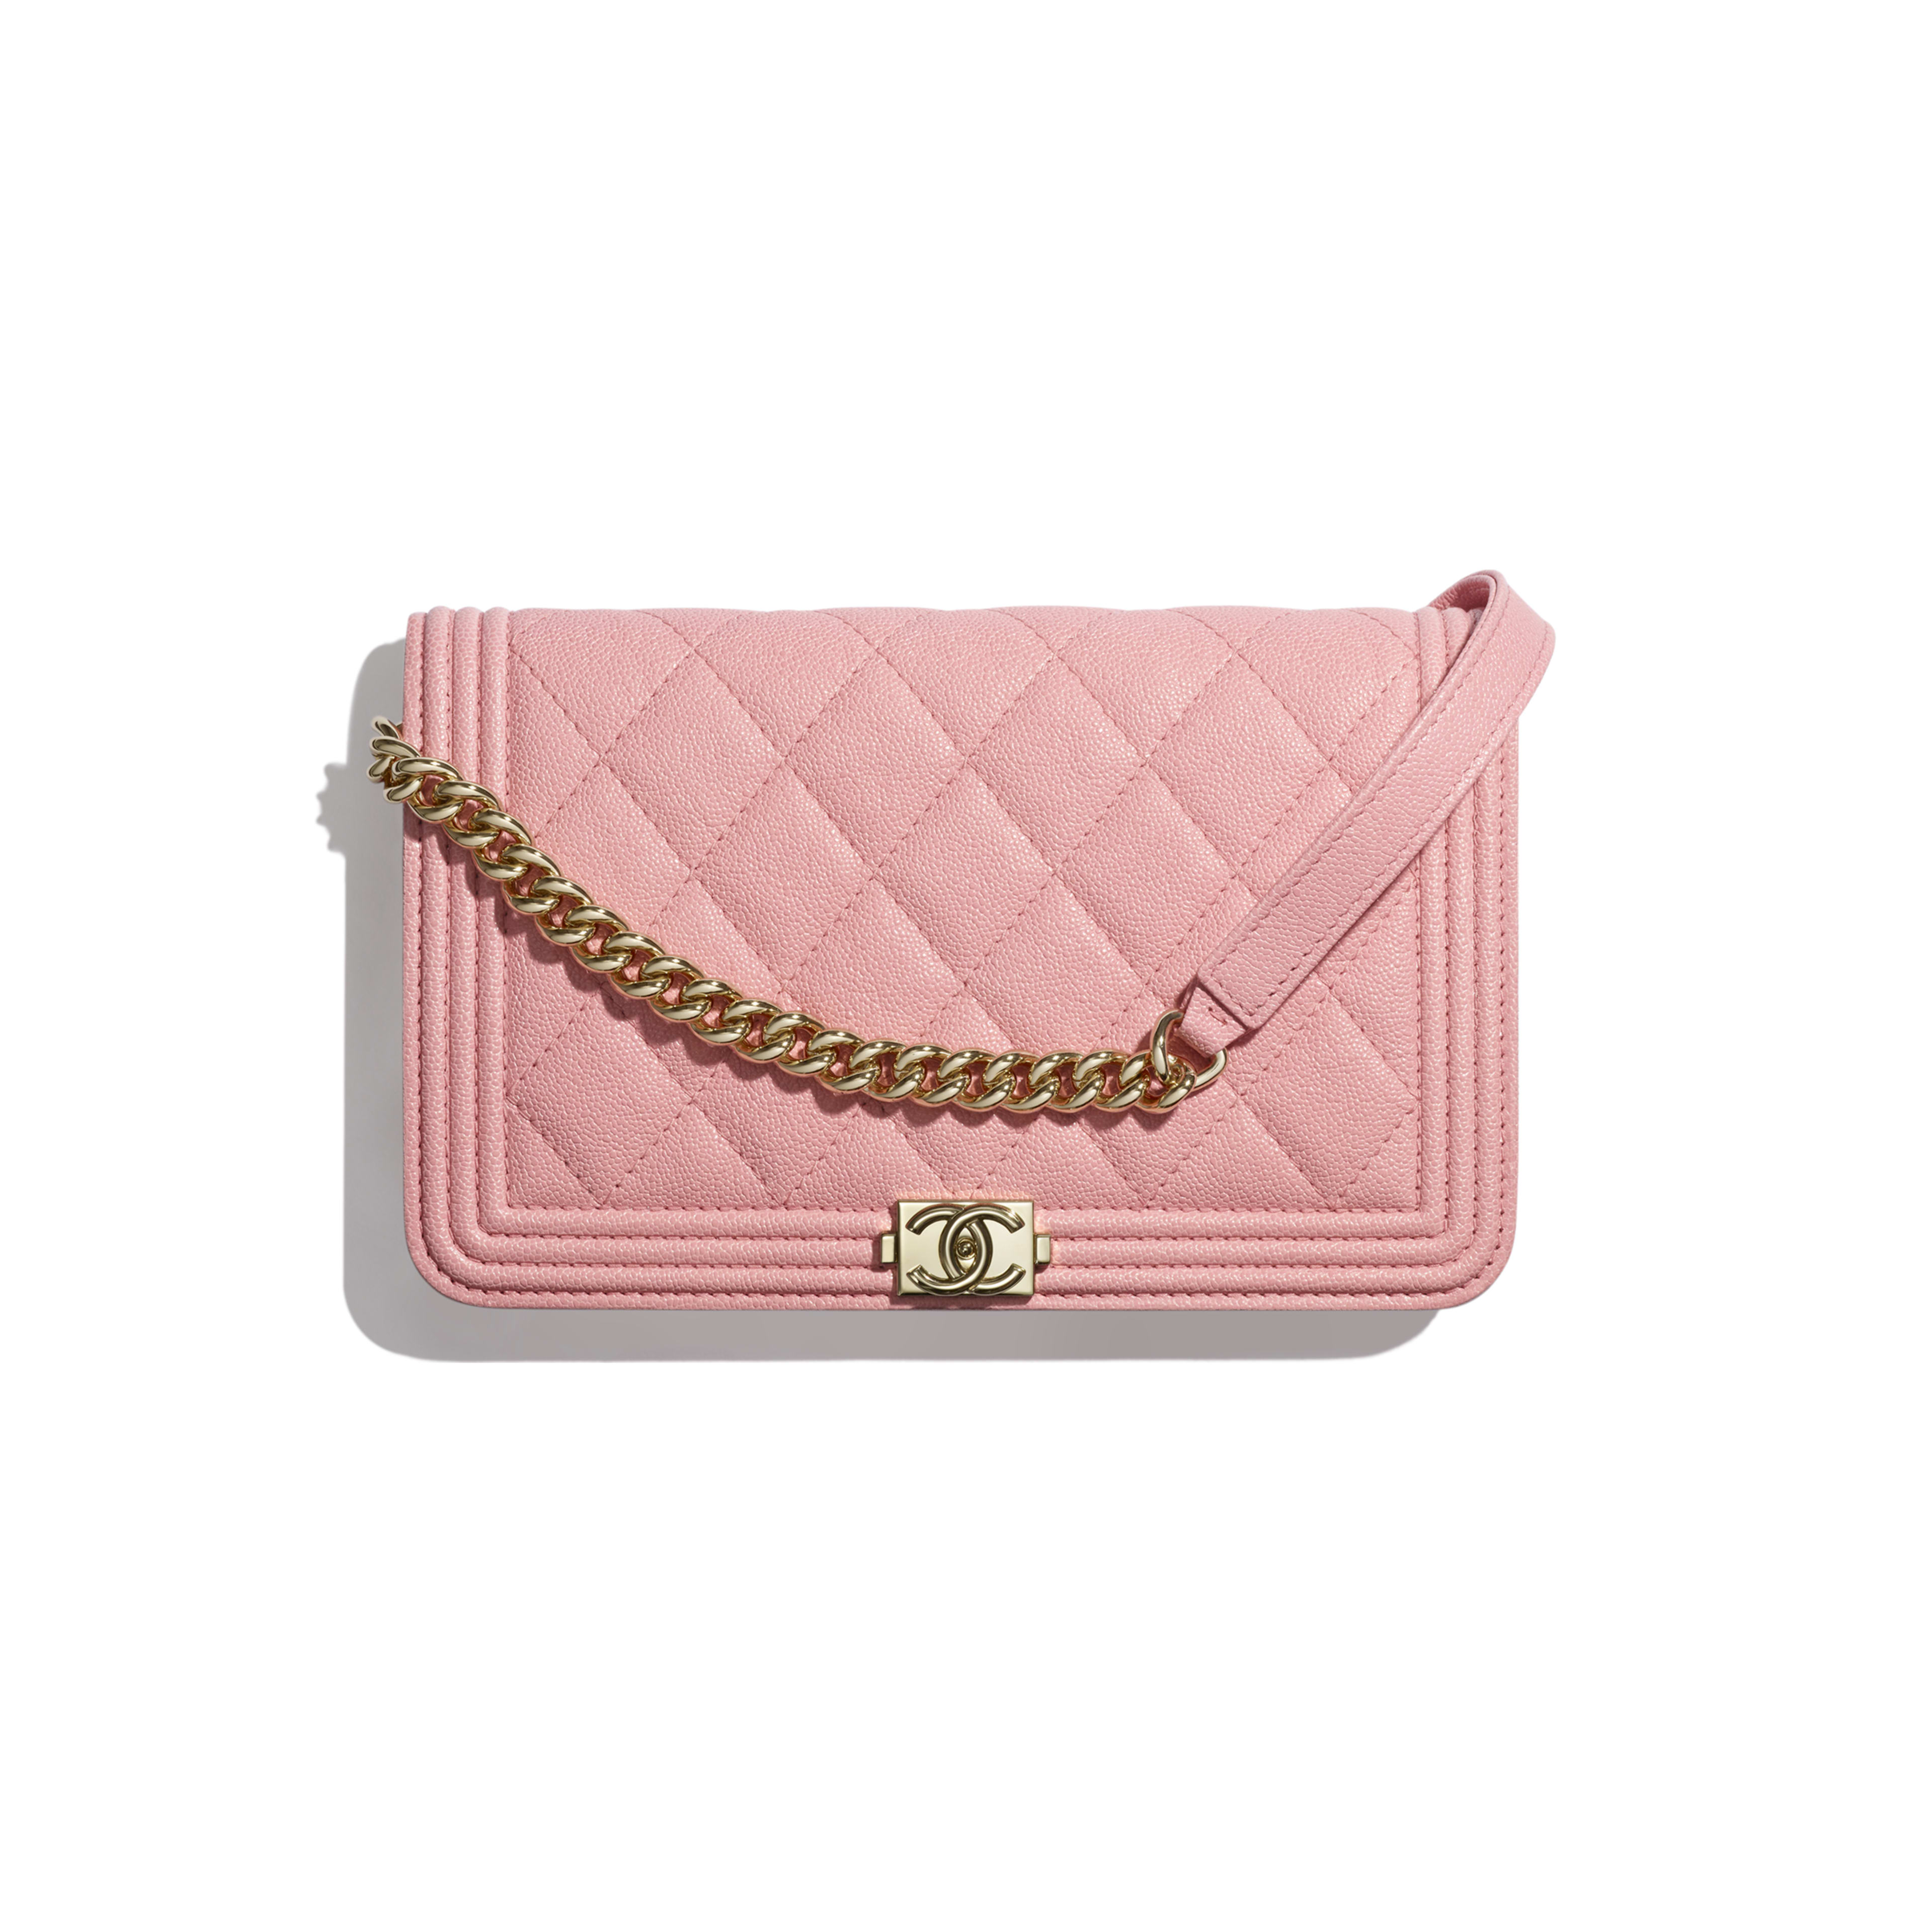 9a9583fa9e5b BOY CHANEL Wallet on Chain - Pink - Grained Calfskin   Gold-Tone Metal ...